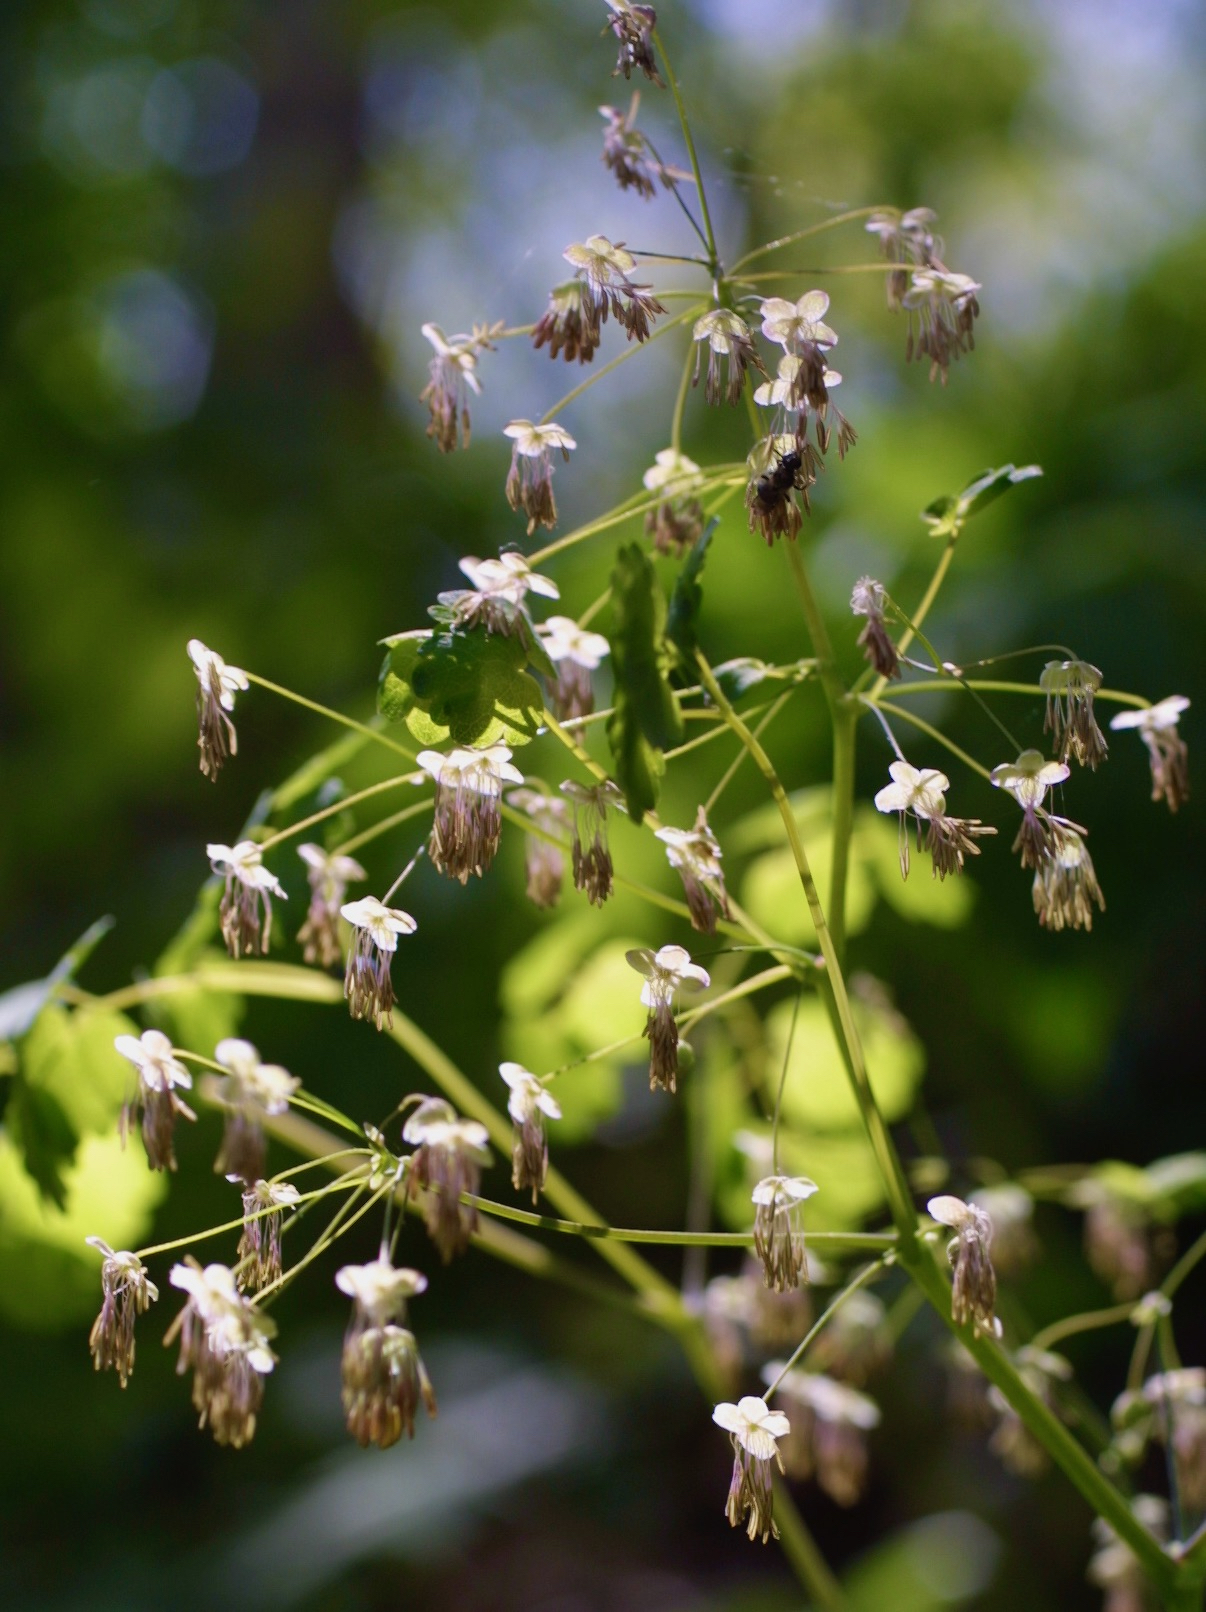 The Scientific Name is Thalictrum dioicum. You will likely hear them called Early Meadowrue, Early Meadow-rue. This picture shows the Male flowers with pale sepals and dangling anthers of Thalictrum dioicum